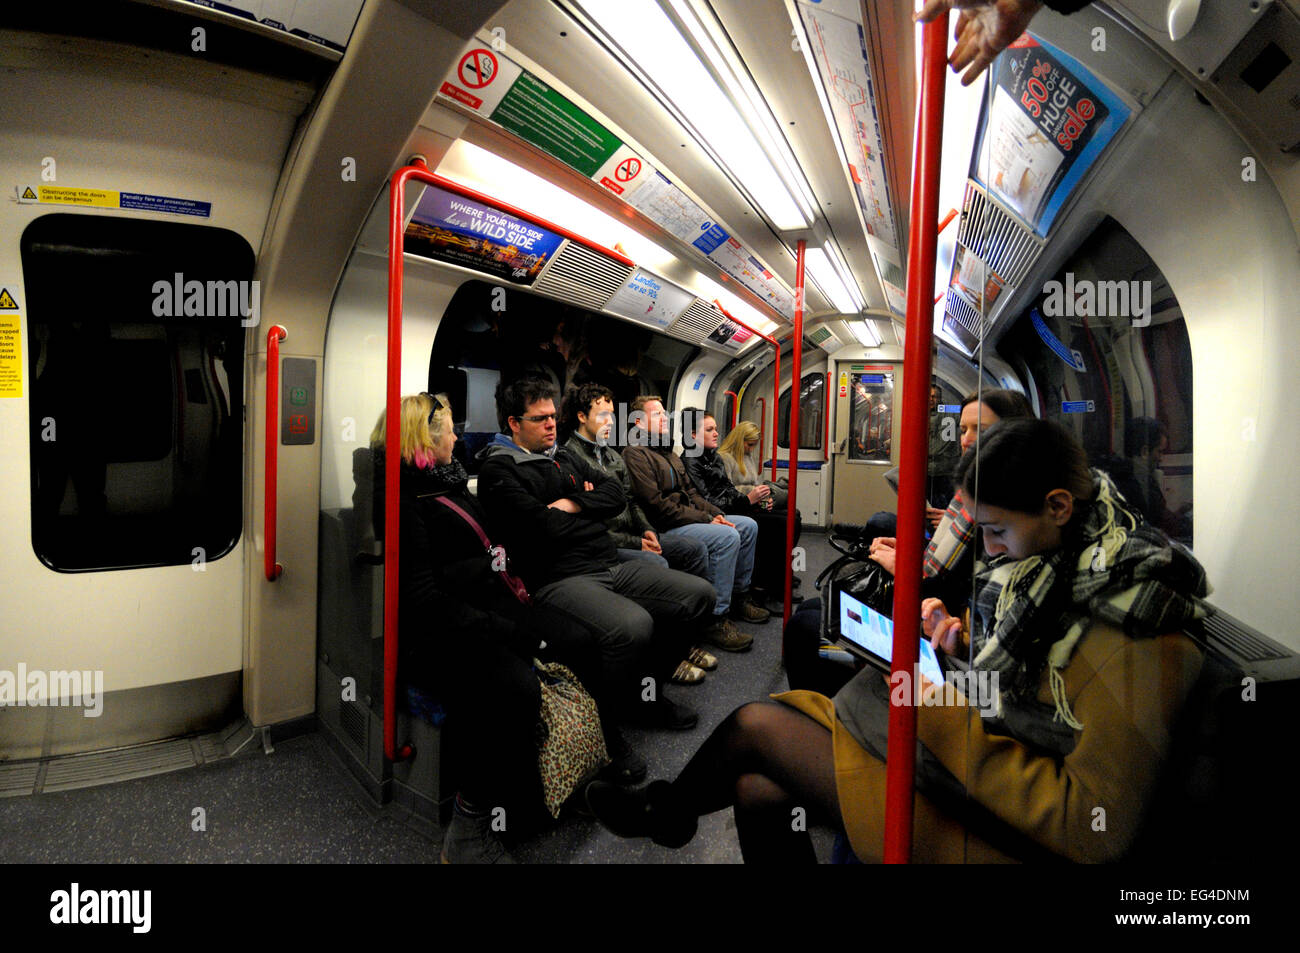 London, England, UK. London underground / tube carriage. - Stock Image